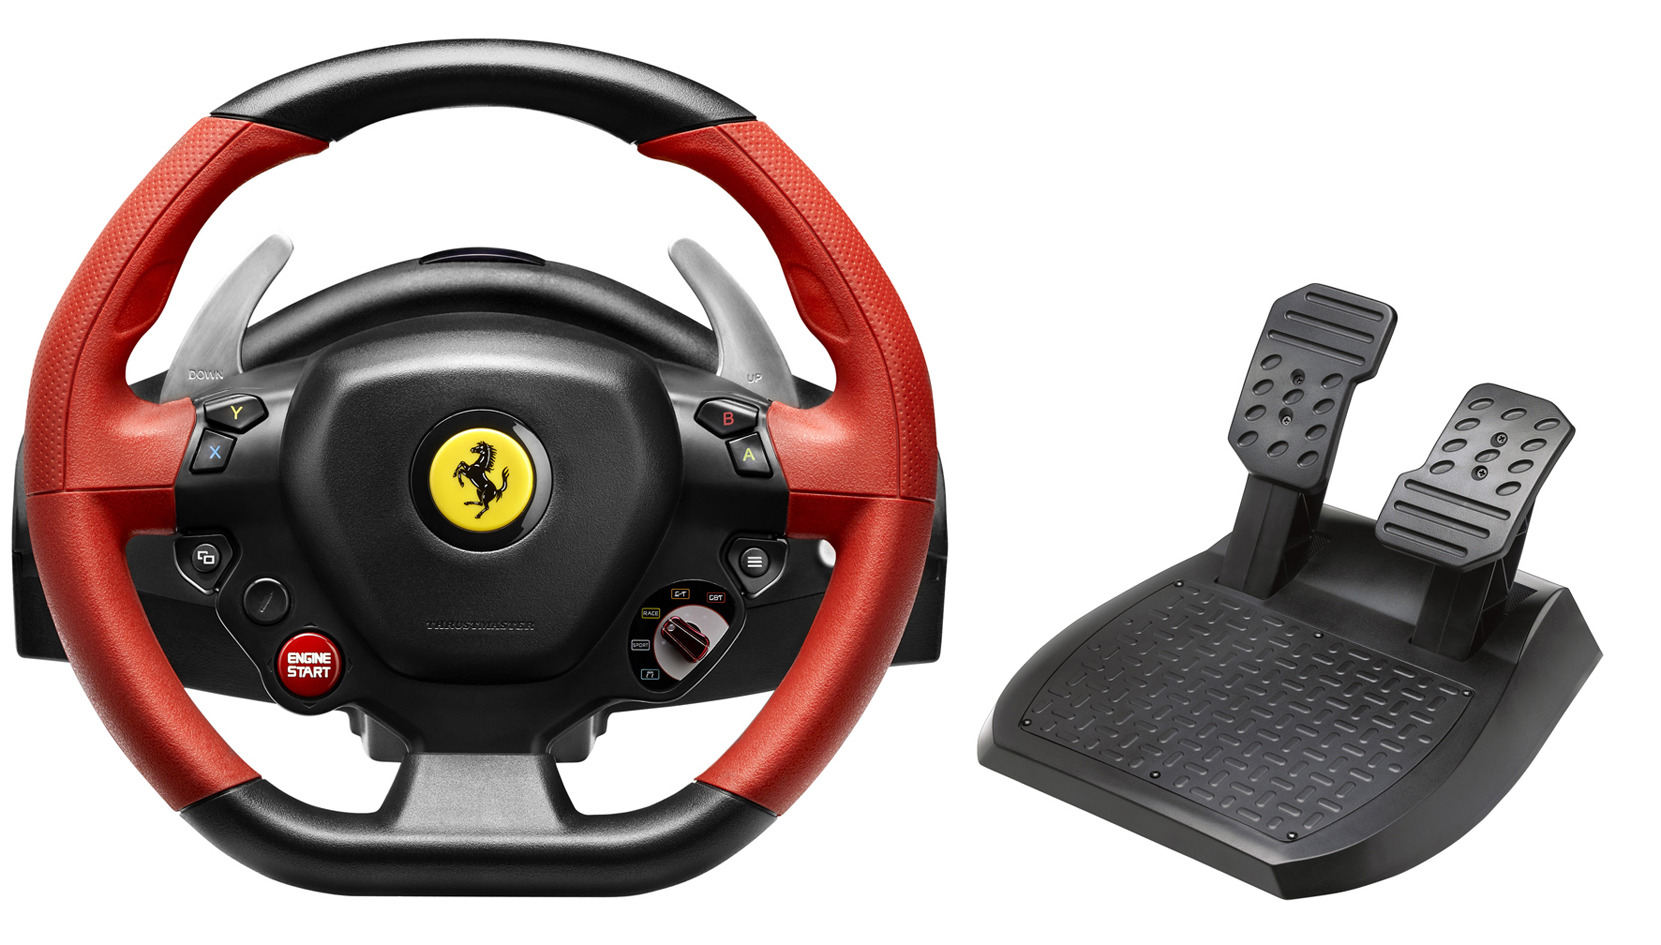 Thrustmaster 458 Spider Racing Wheel Gamechanger